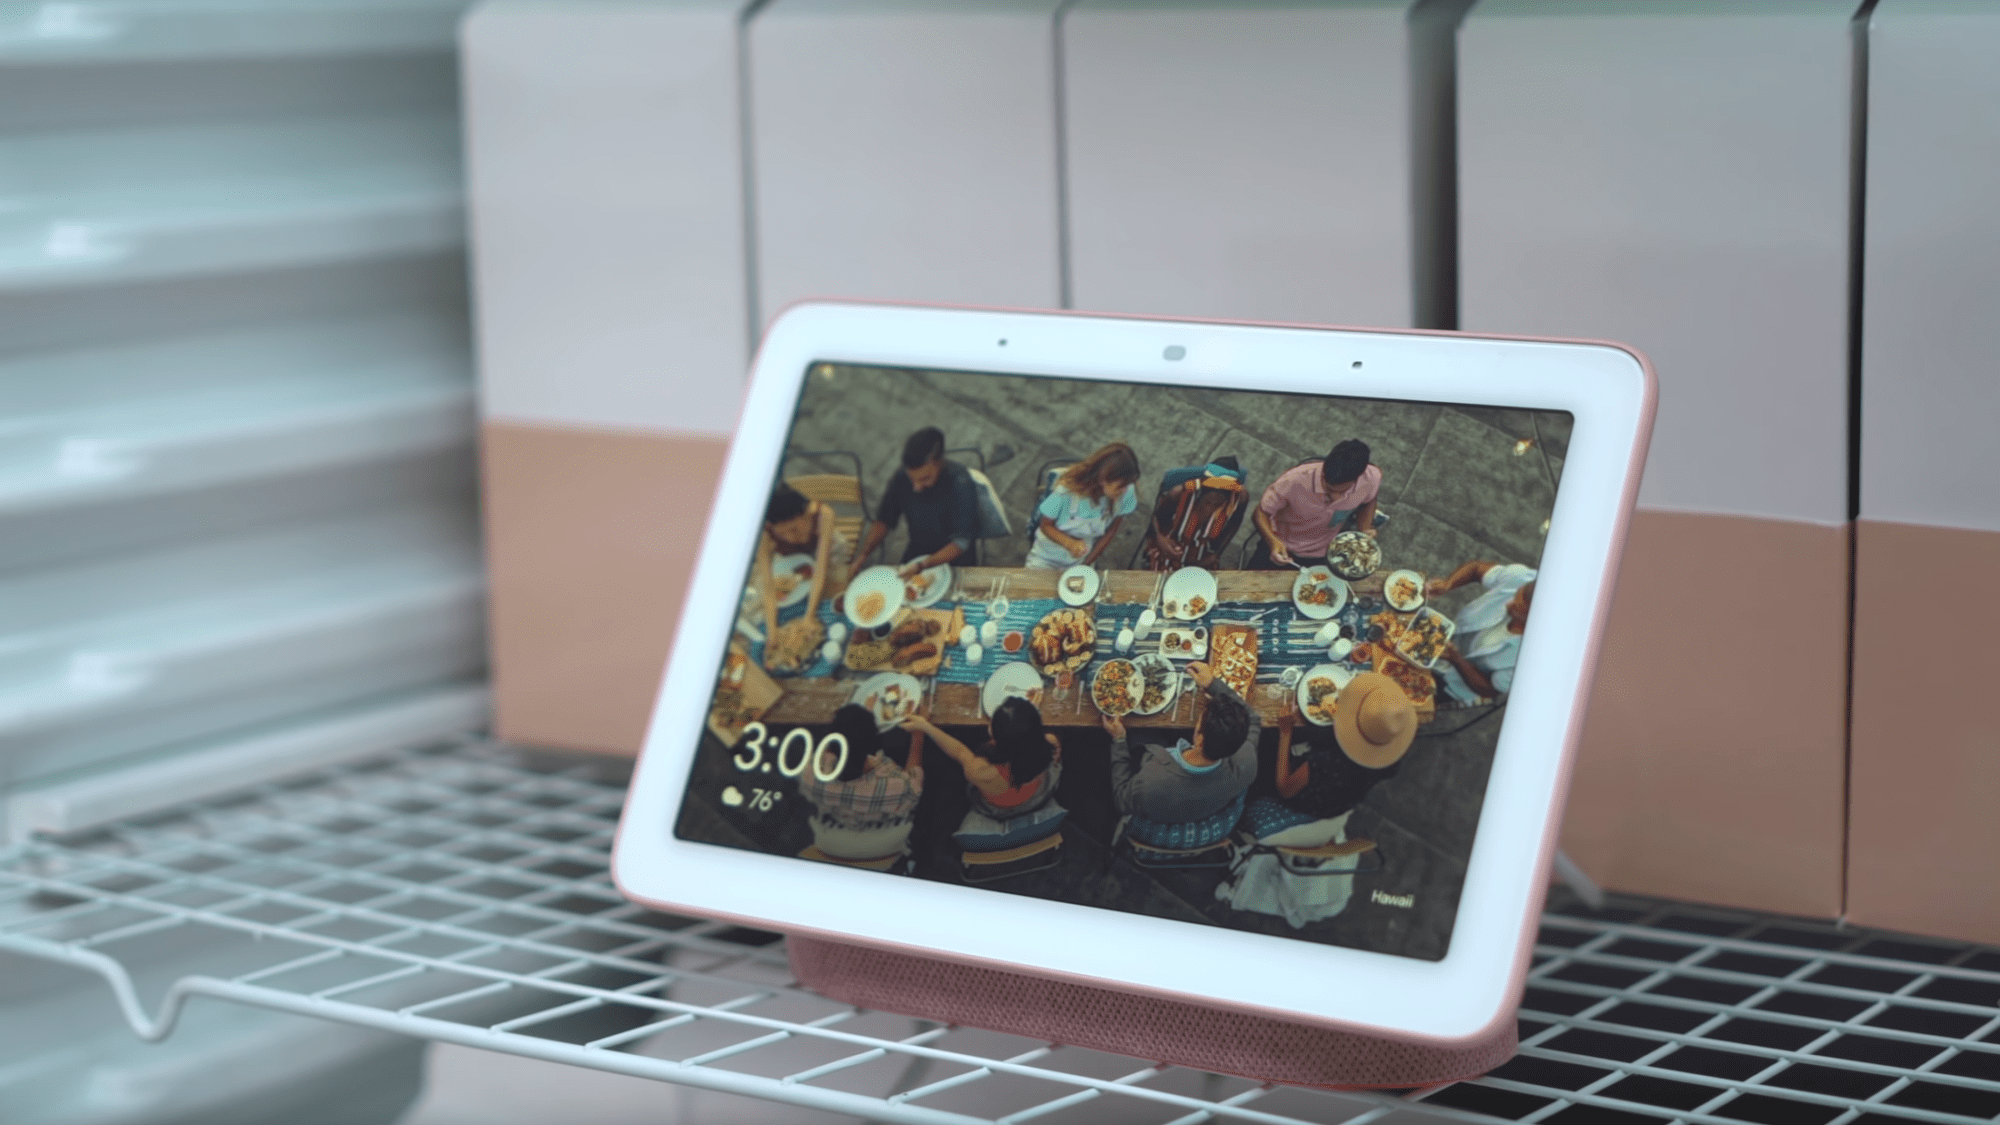 Grab A Google Home Hub And Save Almost 50%